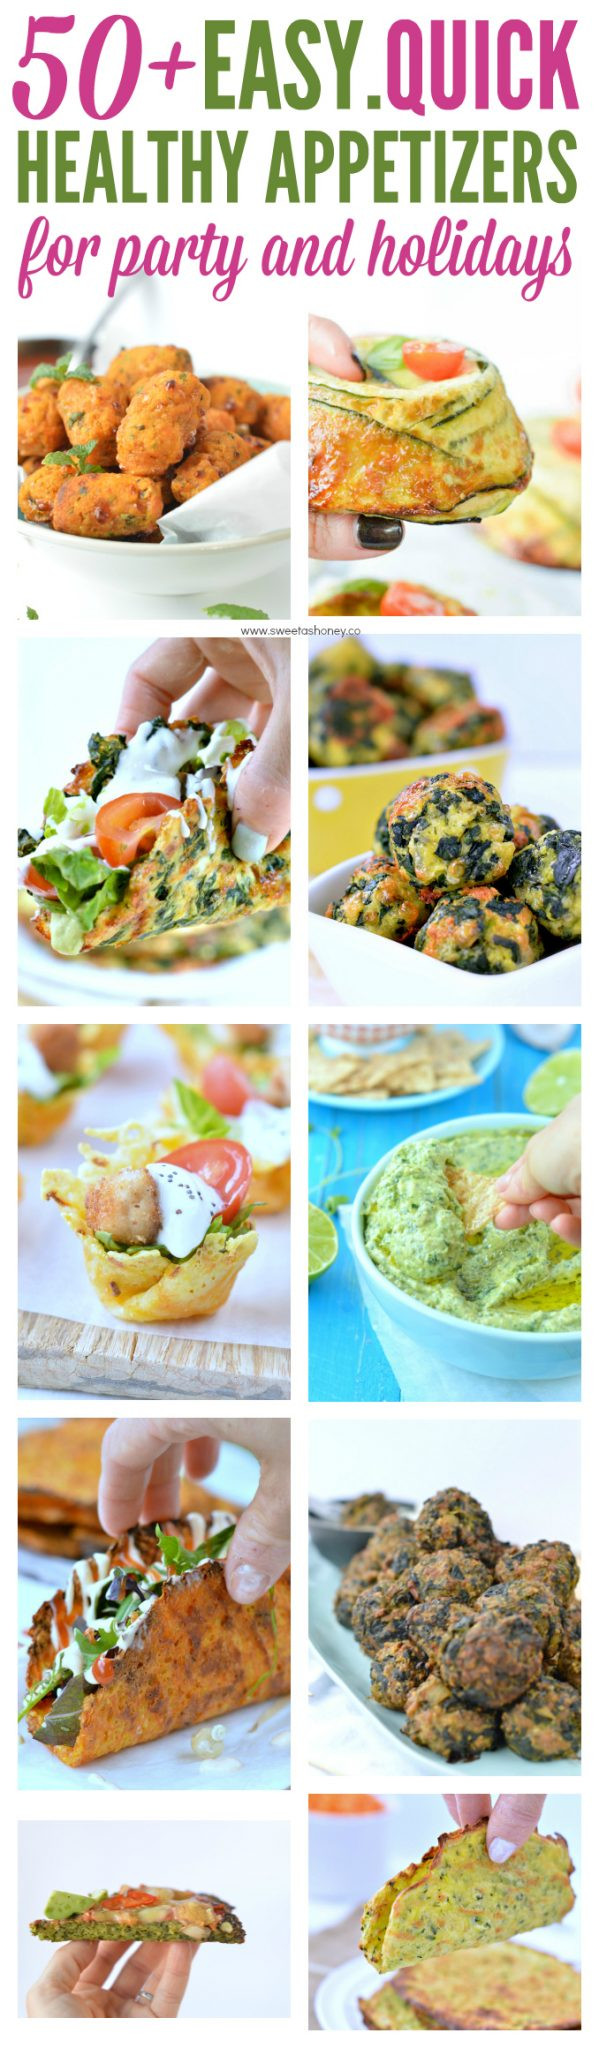 Healthy Appetizers For A Crowd  Easy Healthy Appetizers Quick Finger Foods for a Party